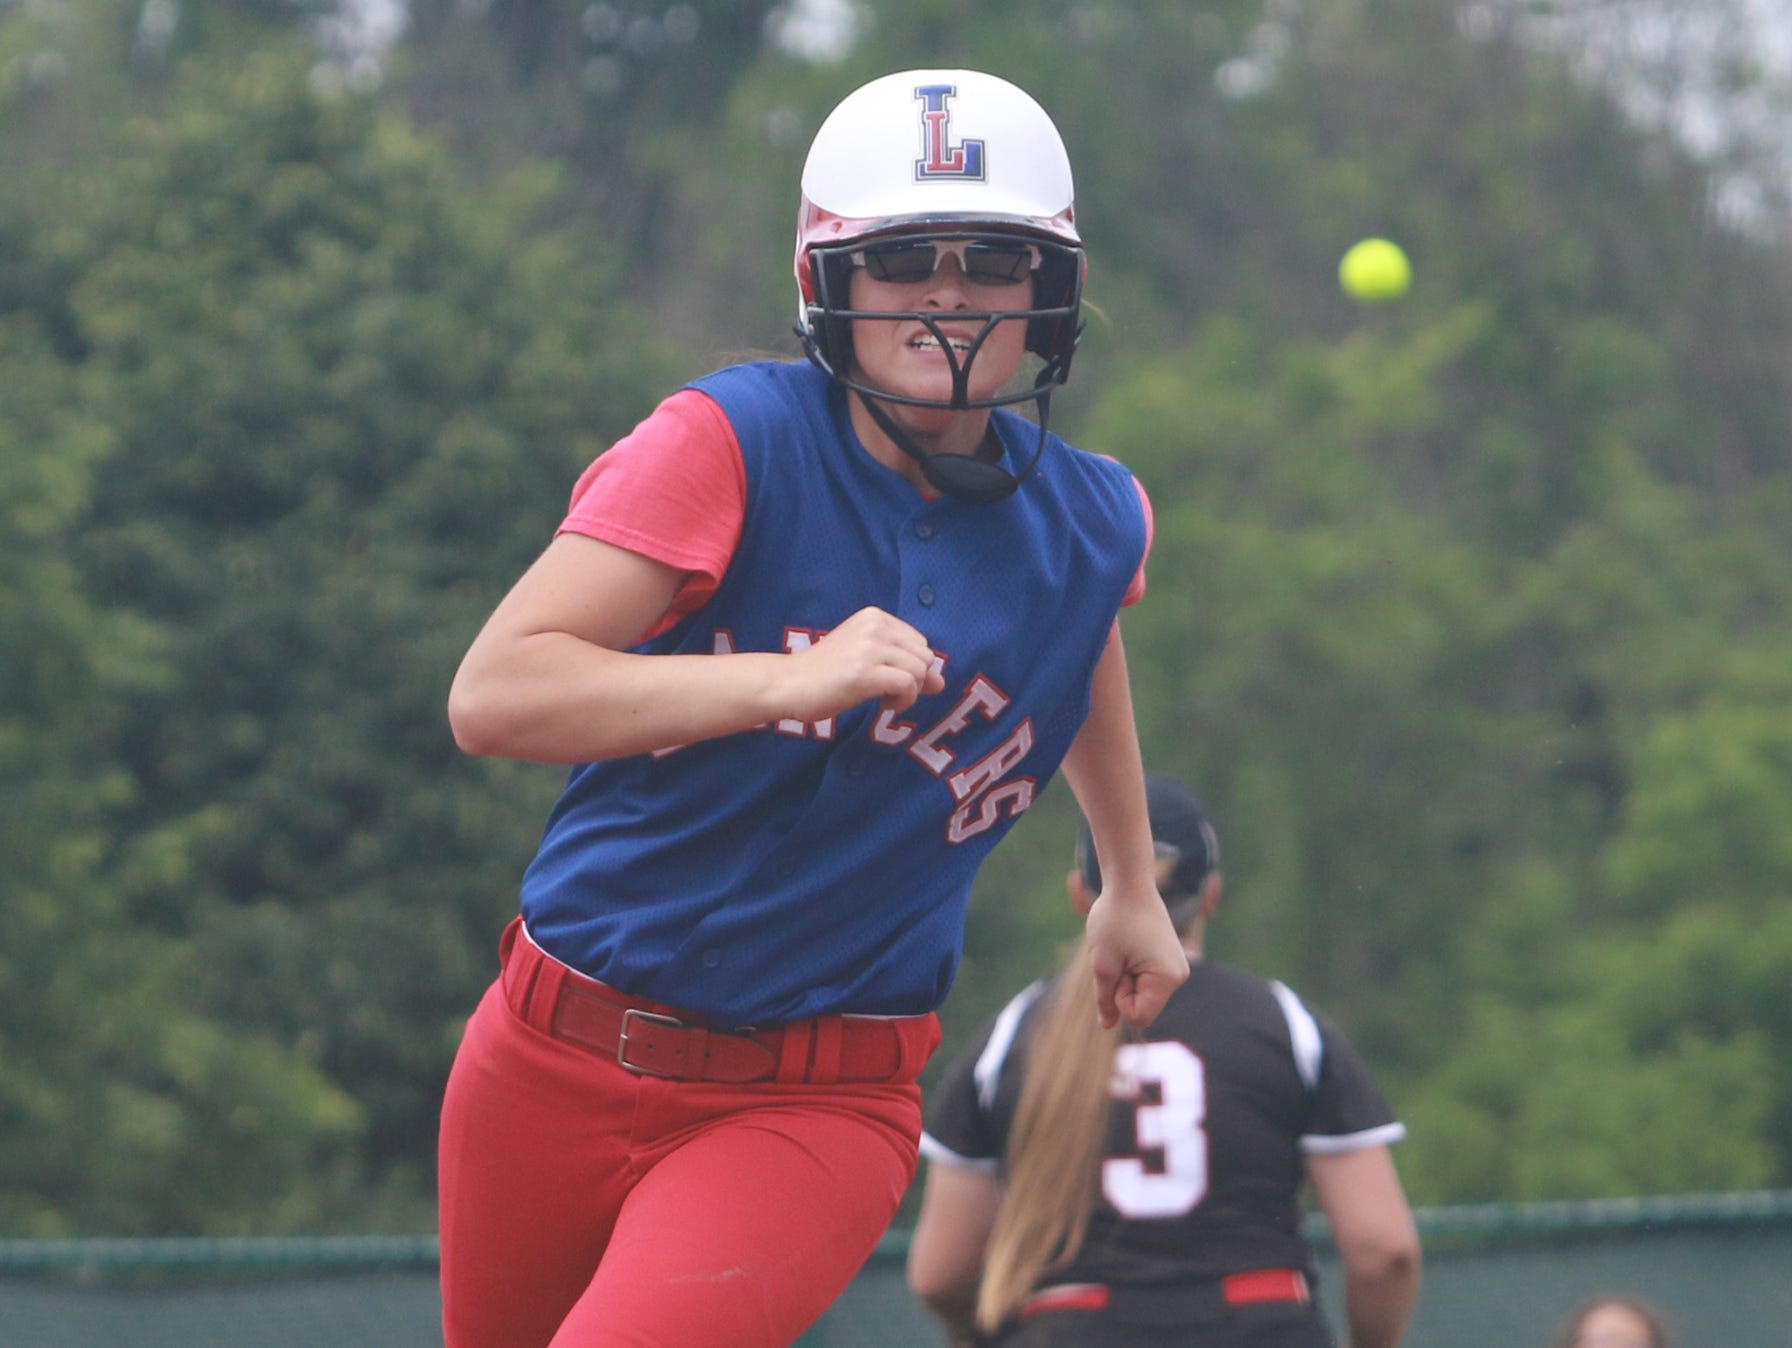 Lakewood's Kristin Peacock rounds second base on her way to a triple during Saturday's Division II regional final against Fairfield Union. The Lancers won 5-0.